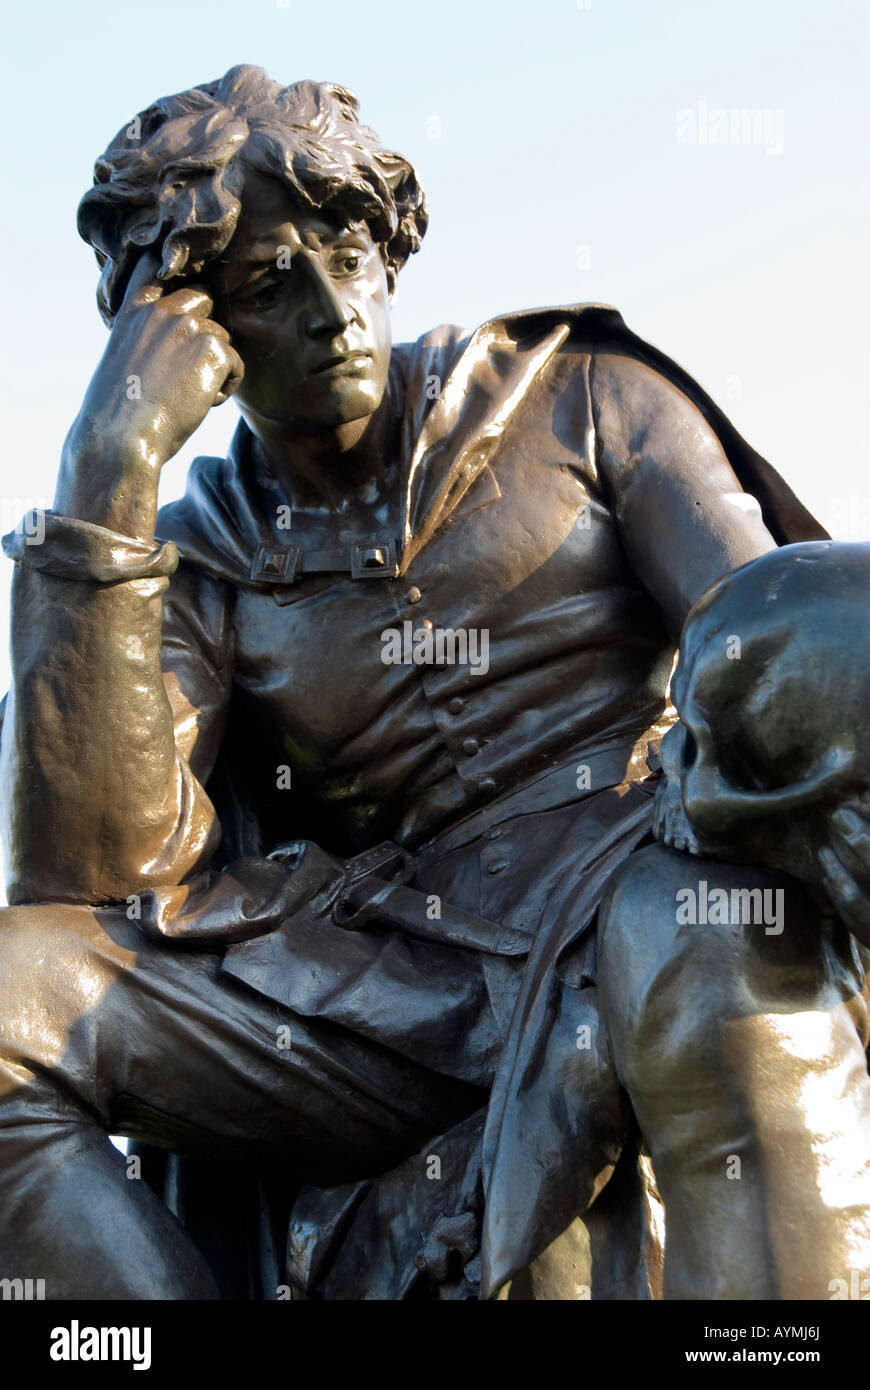 A statue of Hamlet holding the skull of Yorick, at Bancroft Gardens, Stratford upon Avon, Warwickshire, England, - Stock Image